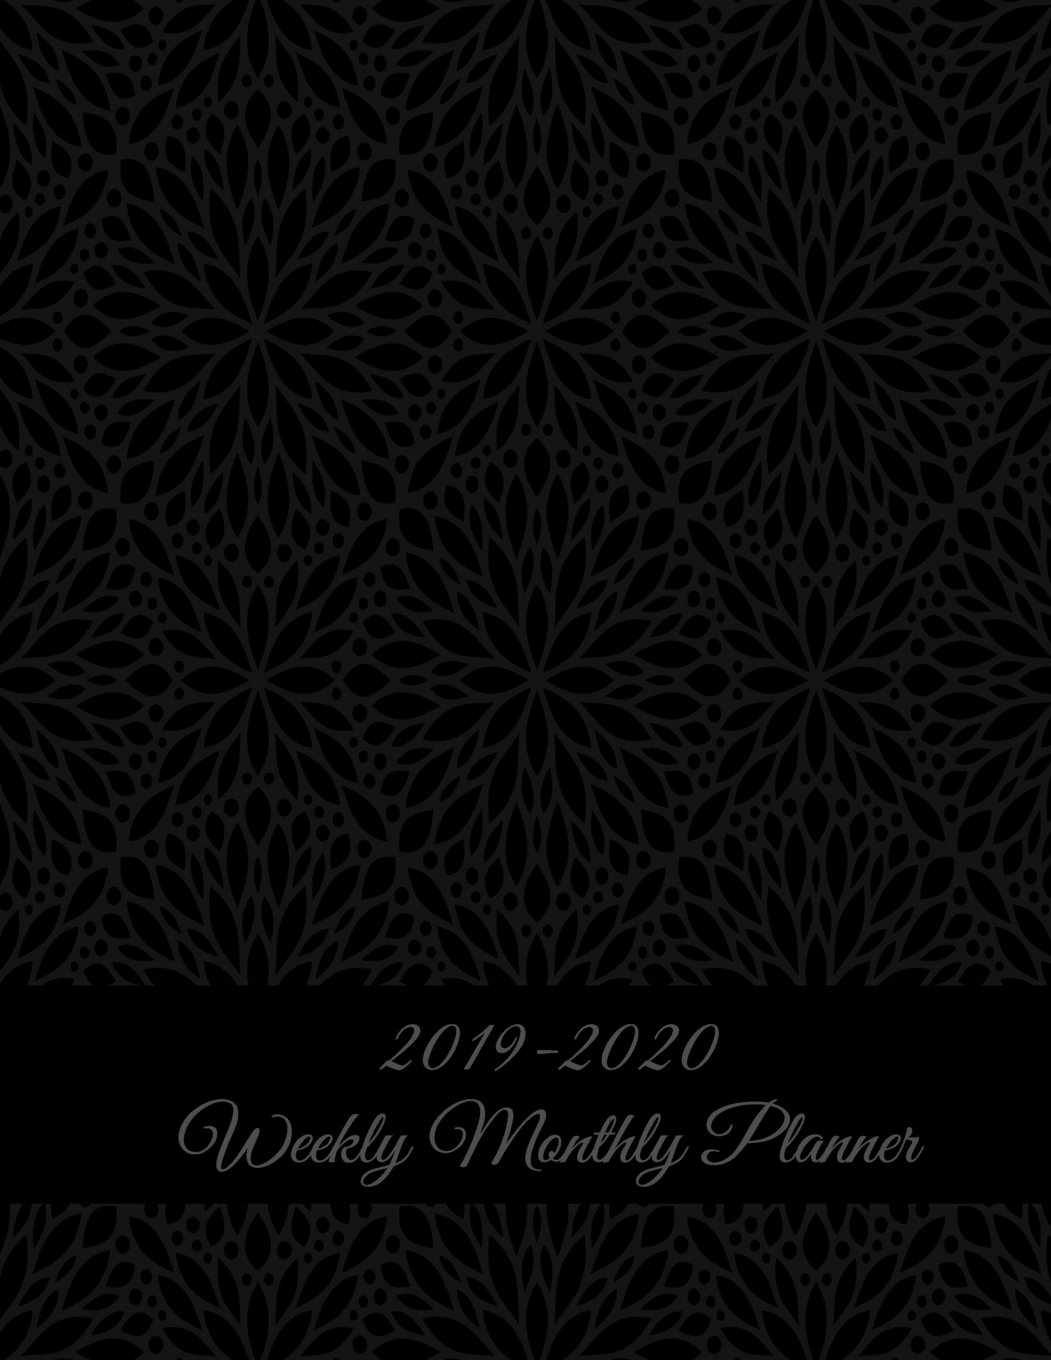 "2019-2020 Weekly Monthly Planner: Black Classic Art, Two year Academic 2019-2020 Calendar Book, Weekly/Monthly/Yearly Calendar Journal, Large 8.5"" x ... Calendar Schedule Organizer Journal Notebook PDF"